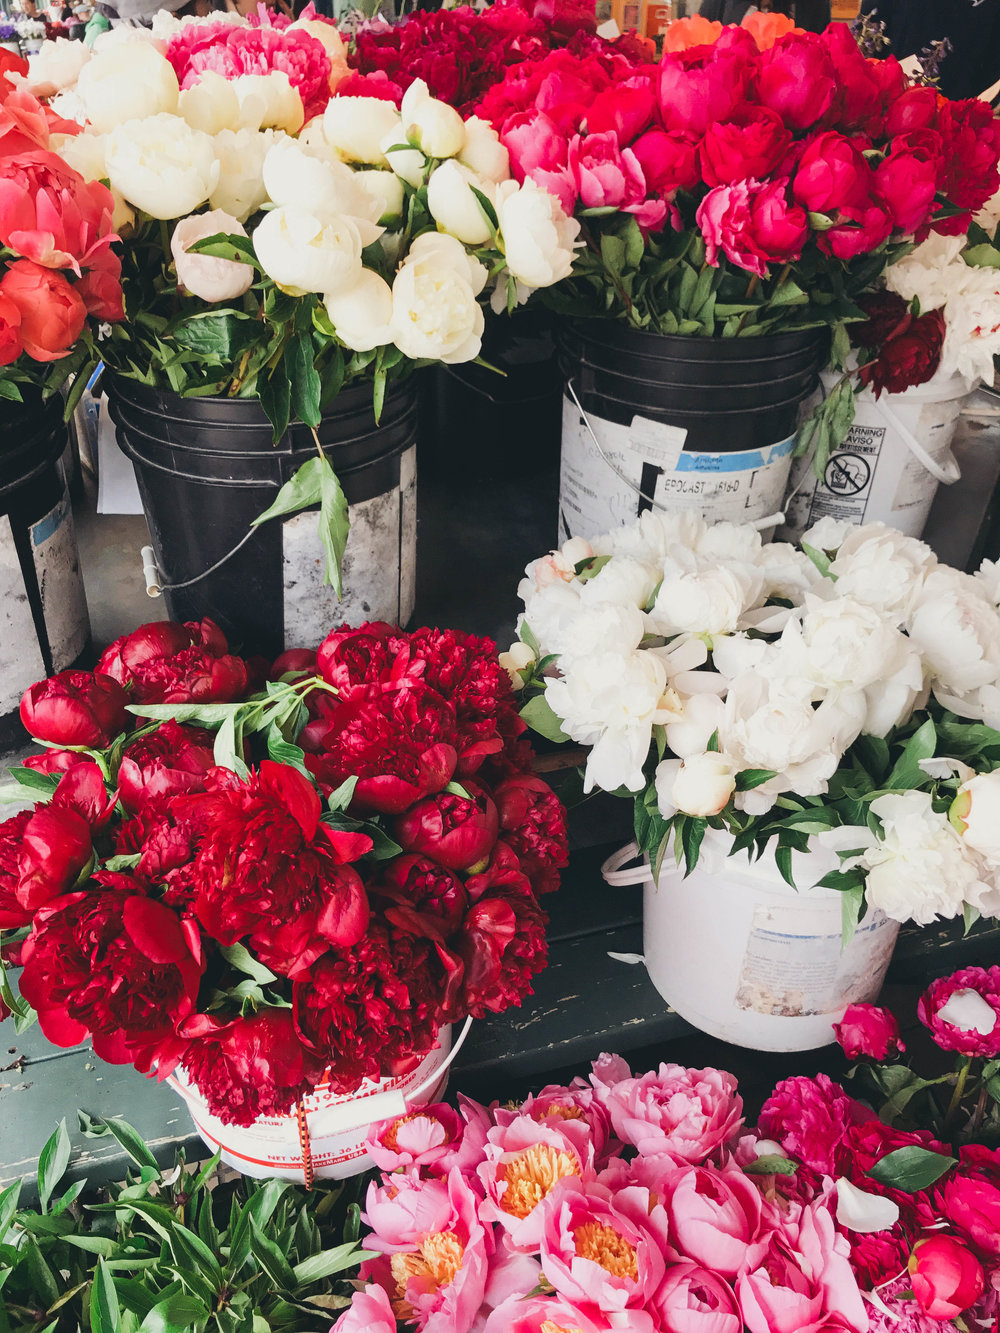 Peonies. Peonies. Peonies. Enough said.